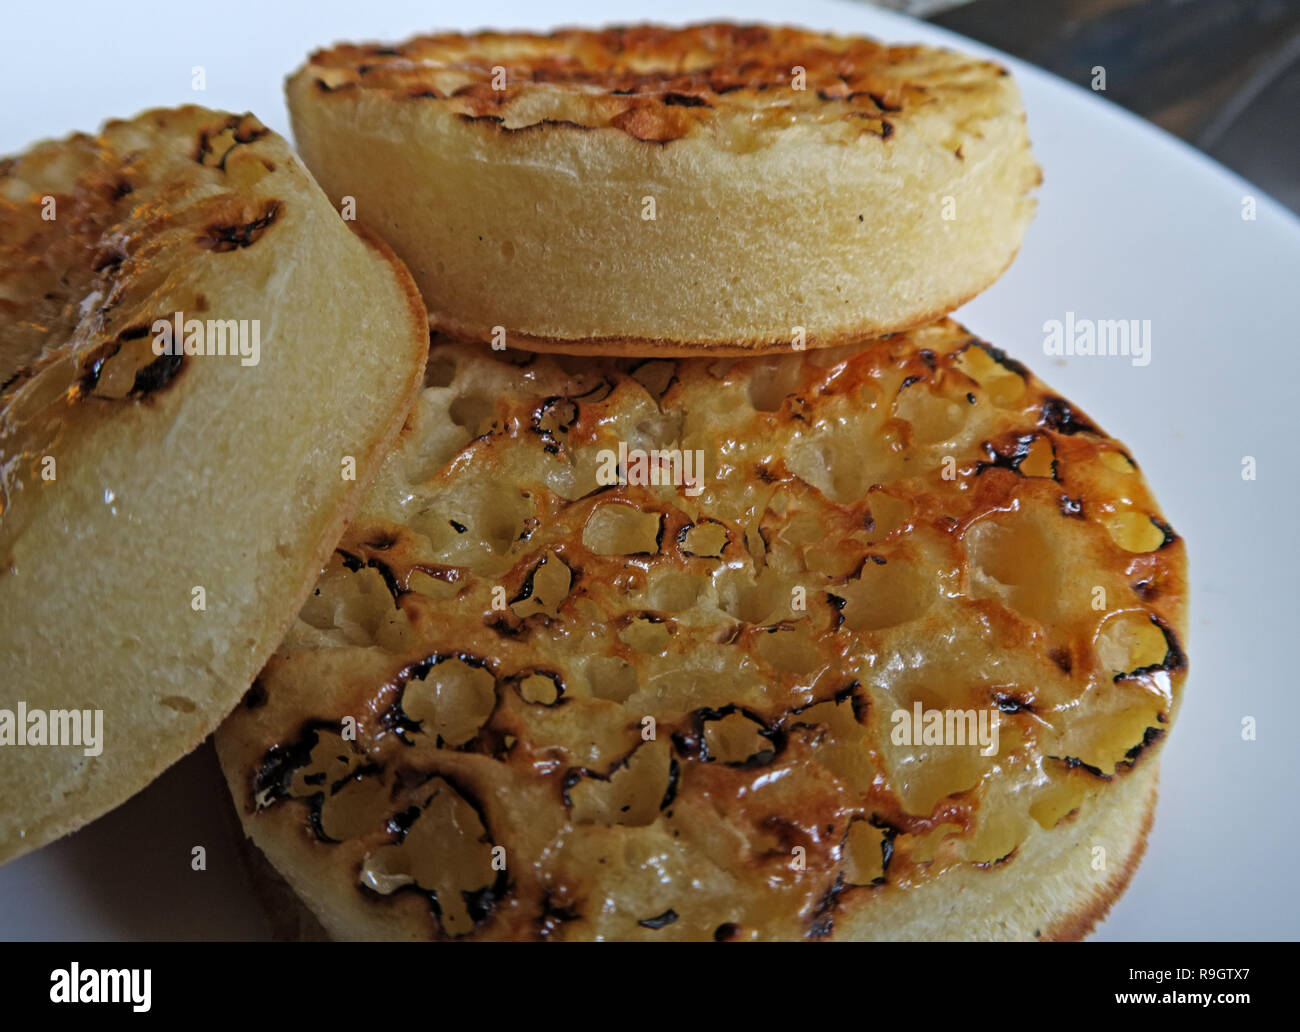 HotpixUK,@HotpixUK,GoTonySmith,buttered,toasted,sitting,hot,small griddle cake,small,griddle cake,bread,breads,picklet,picklets,breakfast,tasty,vegan,Wales,eat,food,English,shortage,warbies,Warburtons,Warburtons Crumpets,Warburtons Crumpet,grocery,groceries,midlands,circular,round,English Crumpet,English Crumpets,White Plate,England,northern England